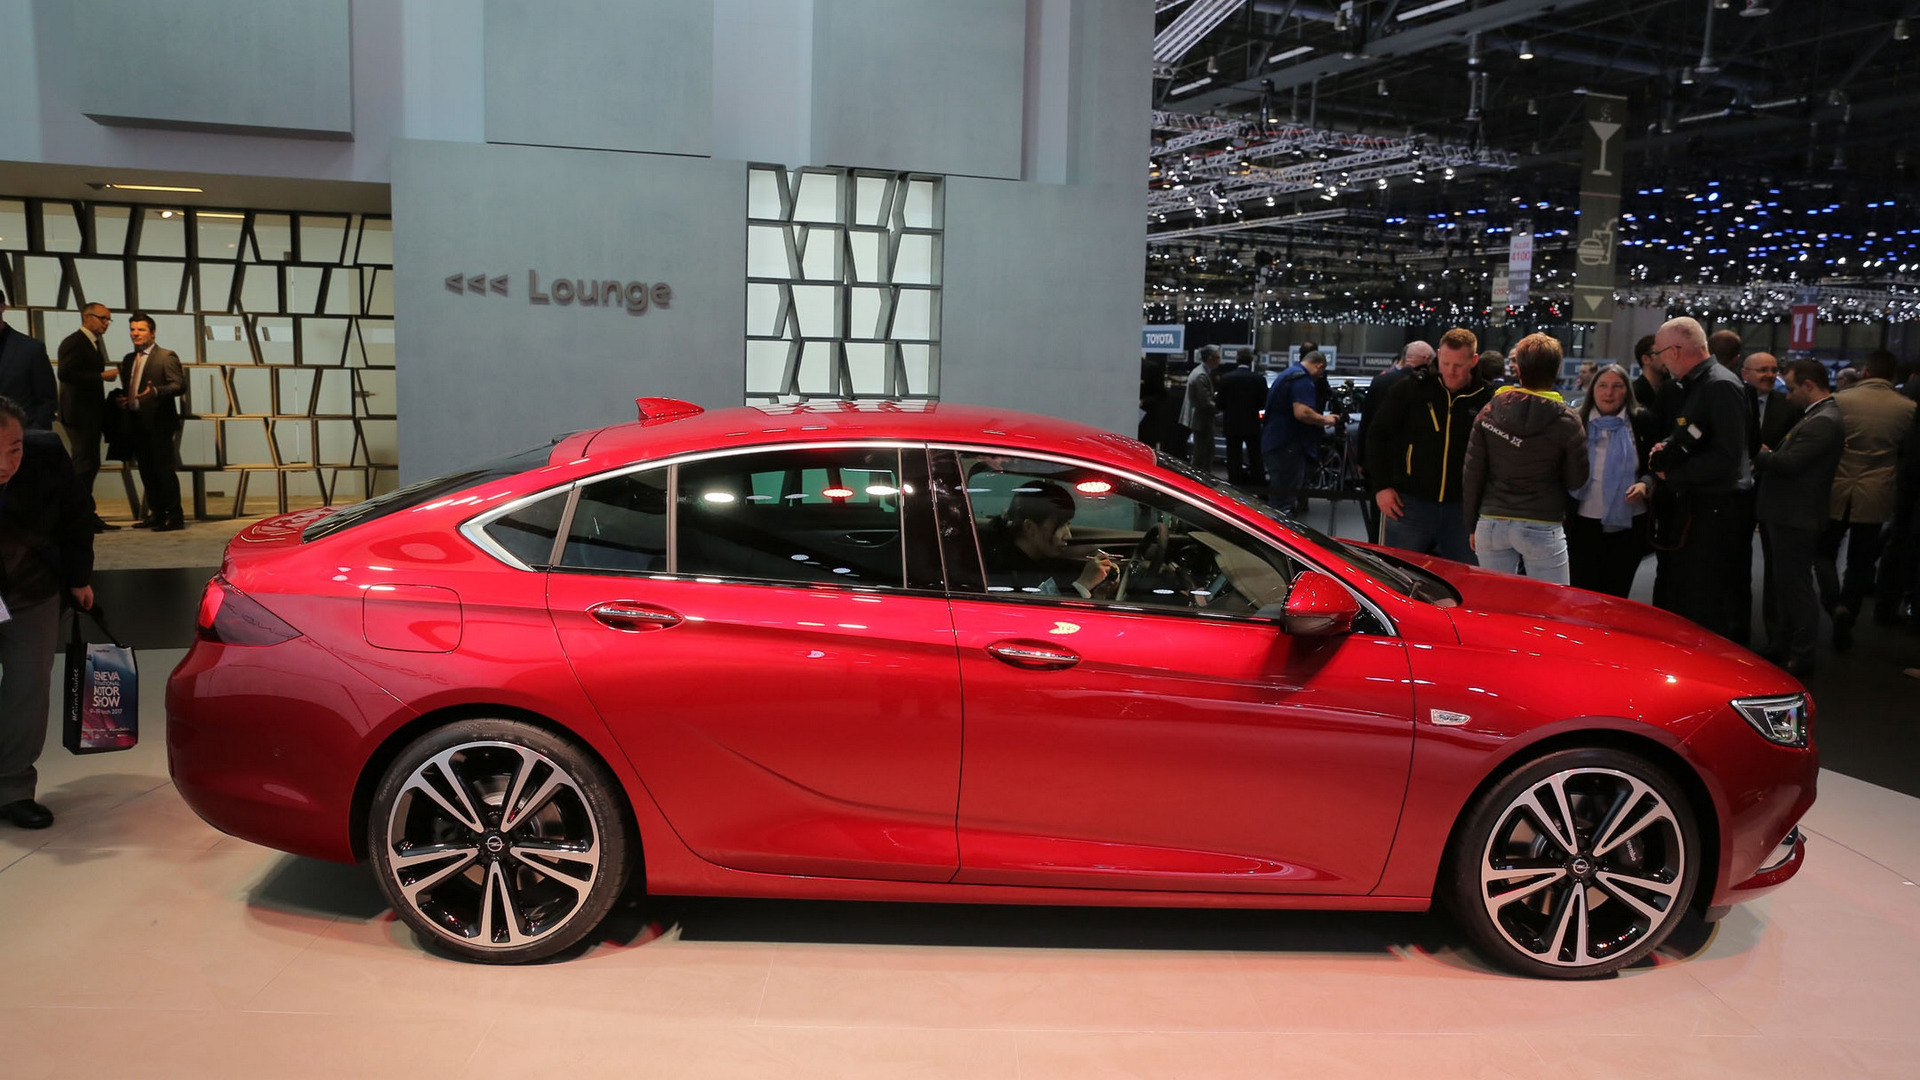 2017 opel insignia lands in geneva as an appealing passat rival. Black Bedroom Furniture Sets. Home Design Ideas